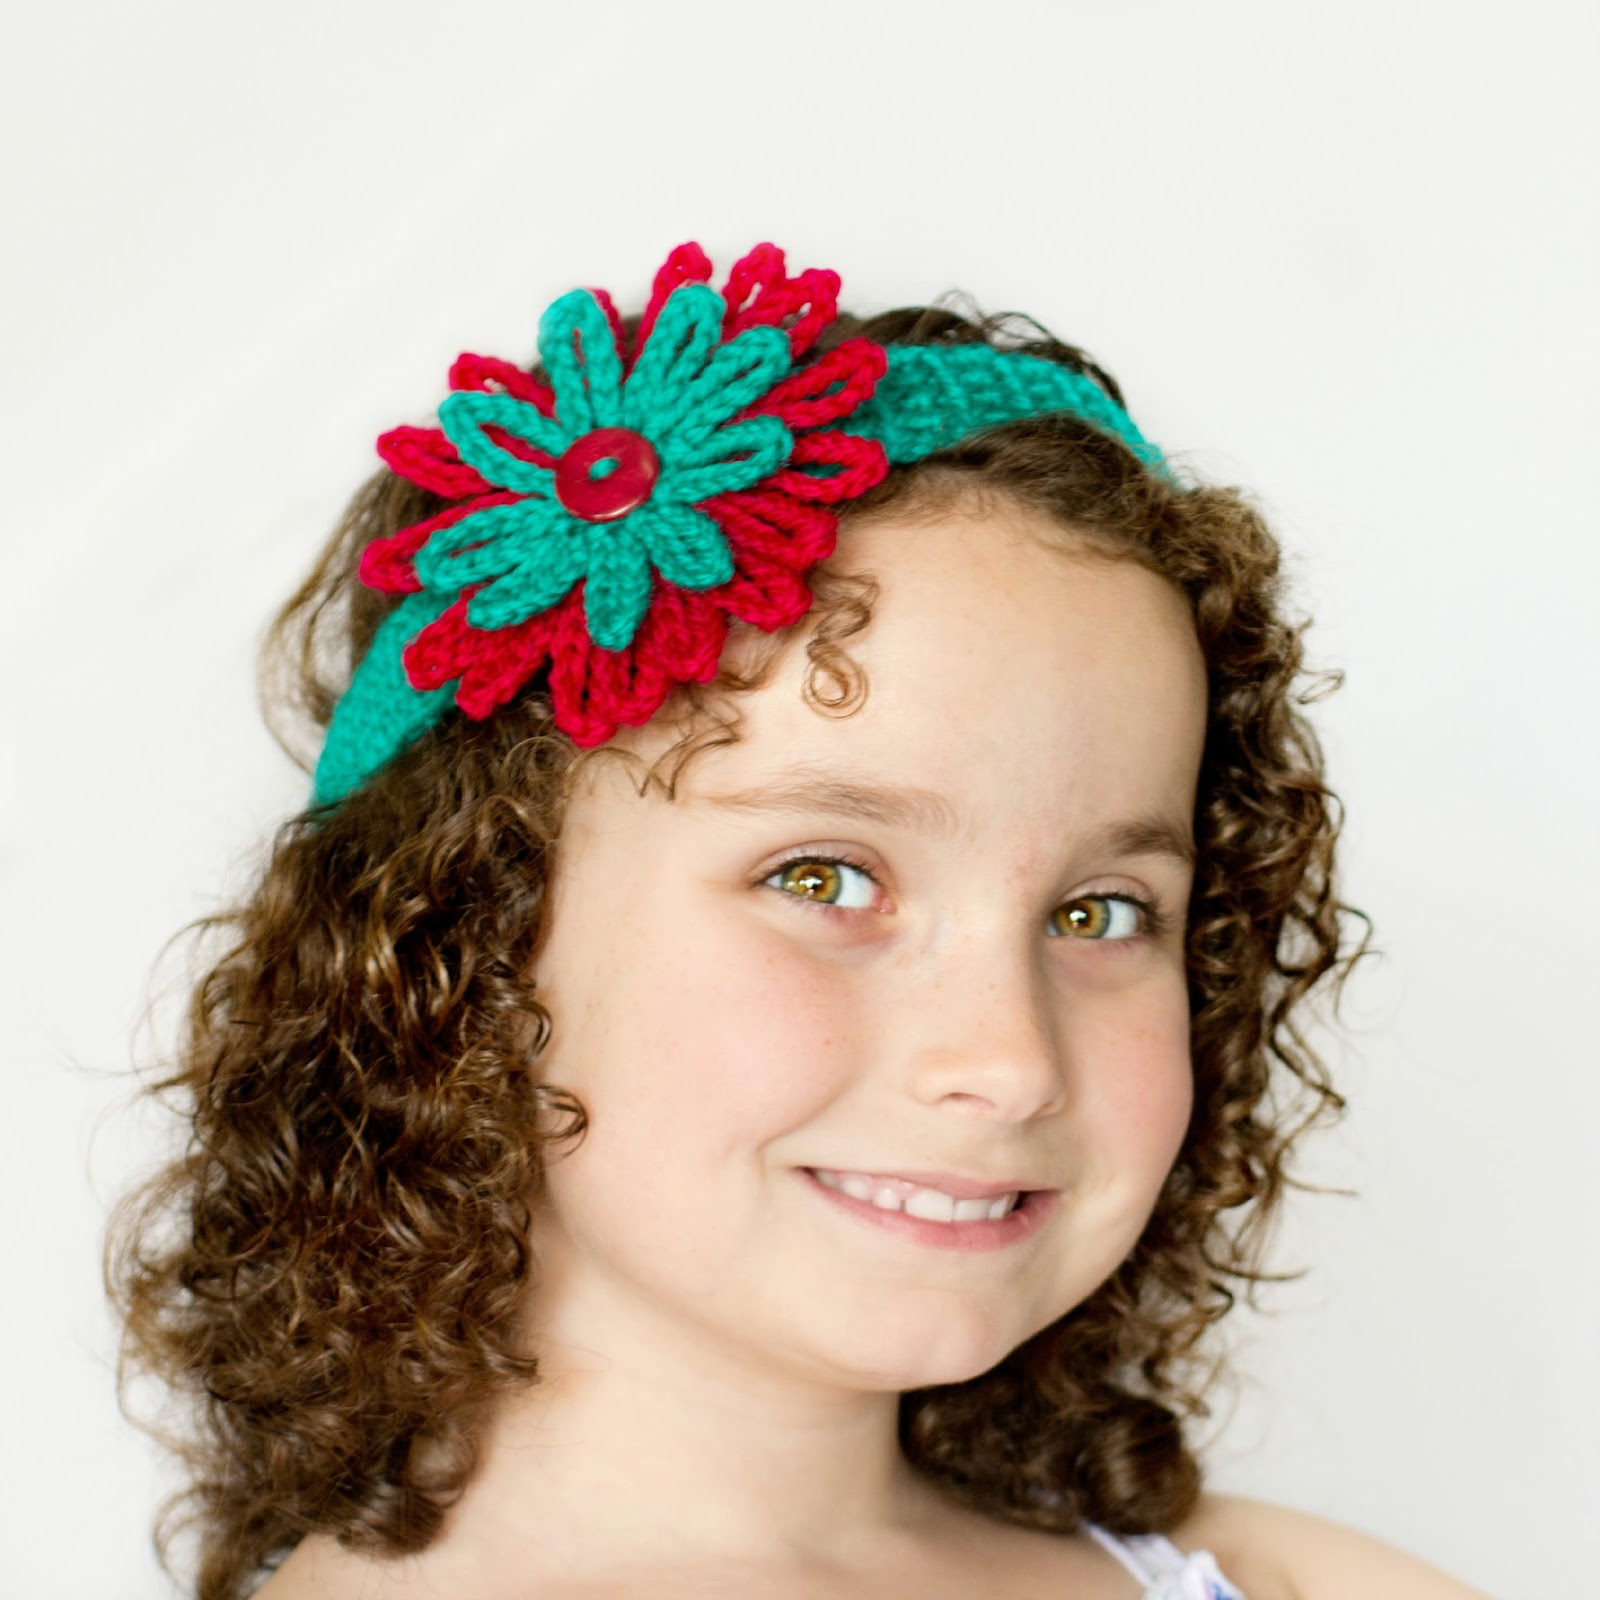 Free Crochet Pattern Flowers Headbands : Hopeful Honey Craft, Crochet, Create: Season Of Giving ...